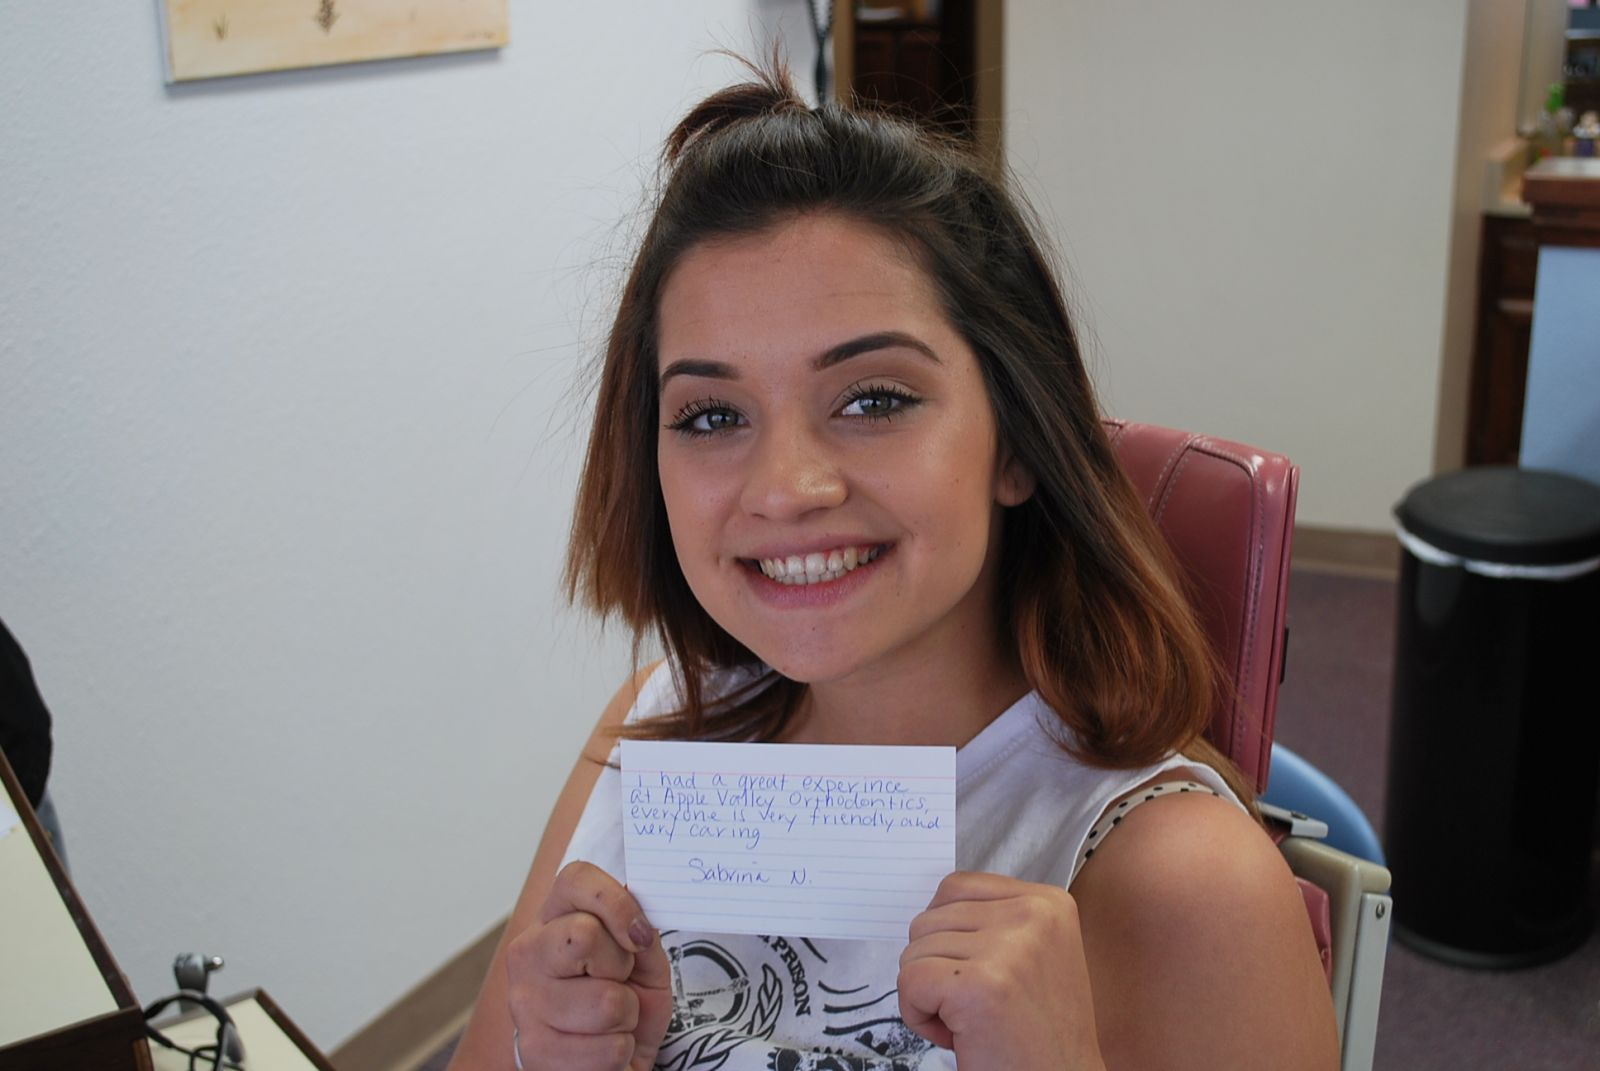 Apple Valley Orthodontics satisfied patient after braces removal.